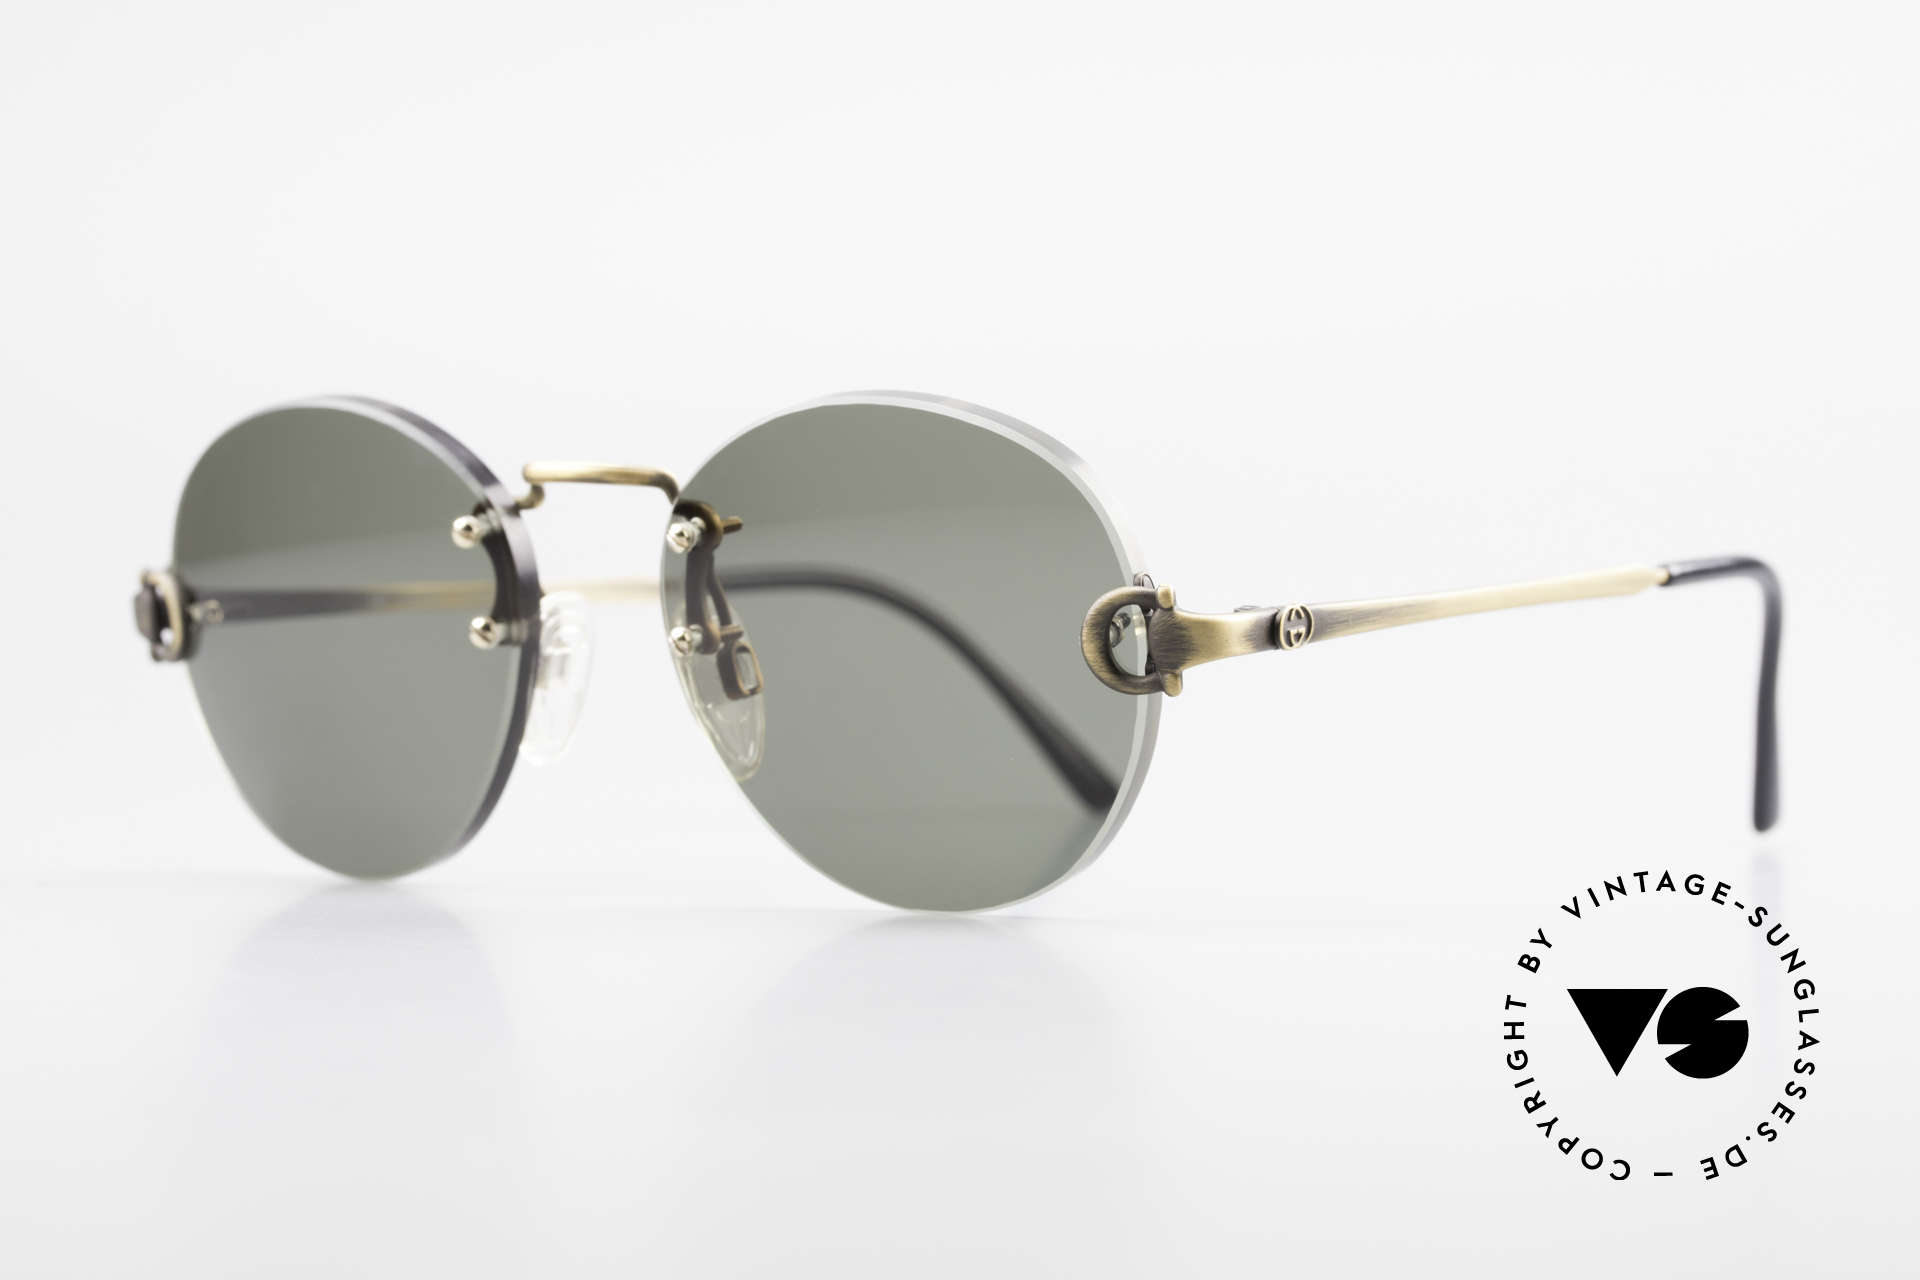 Gucci 2223 Rimless Round Sunglasses, thick, green sun lenses with brass bridge & temples, Made for Men and Women